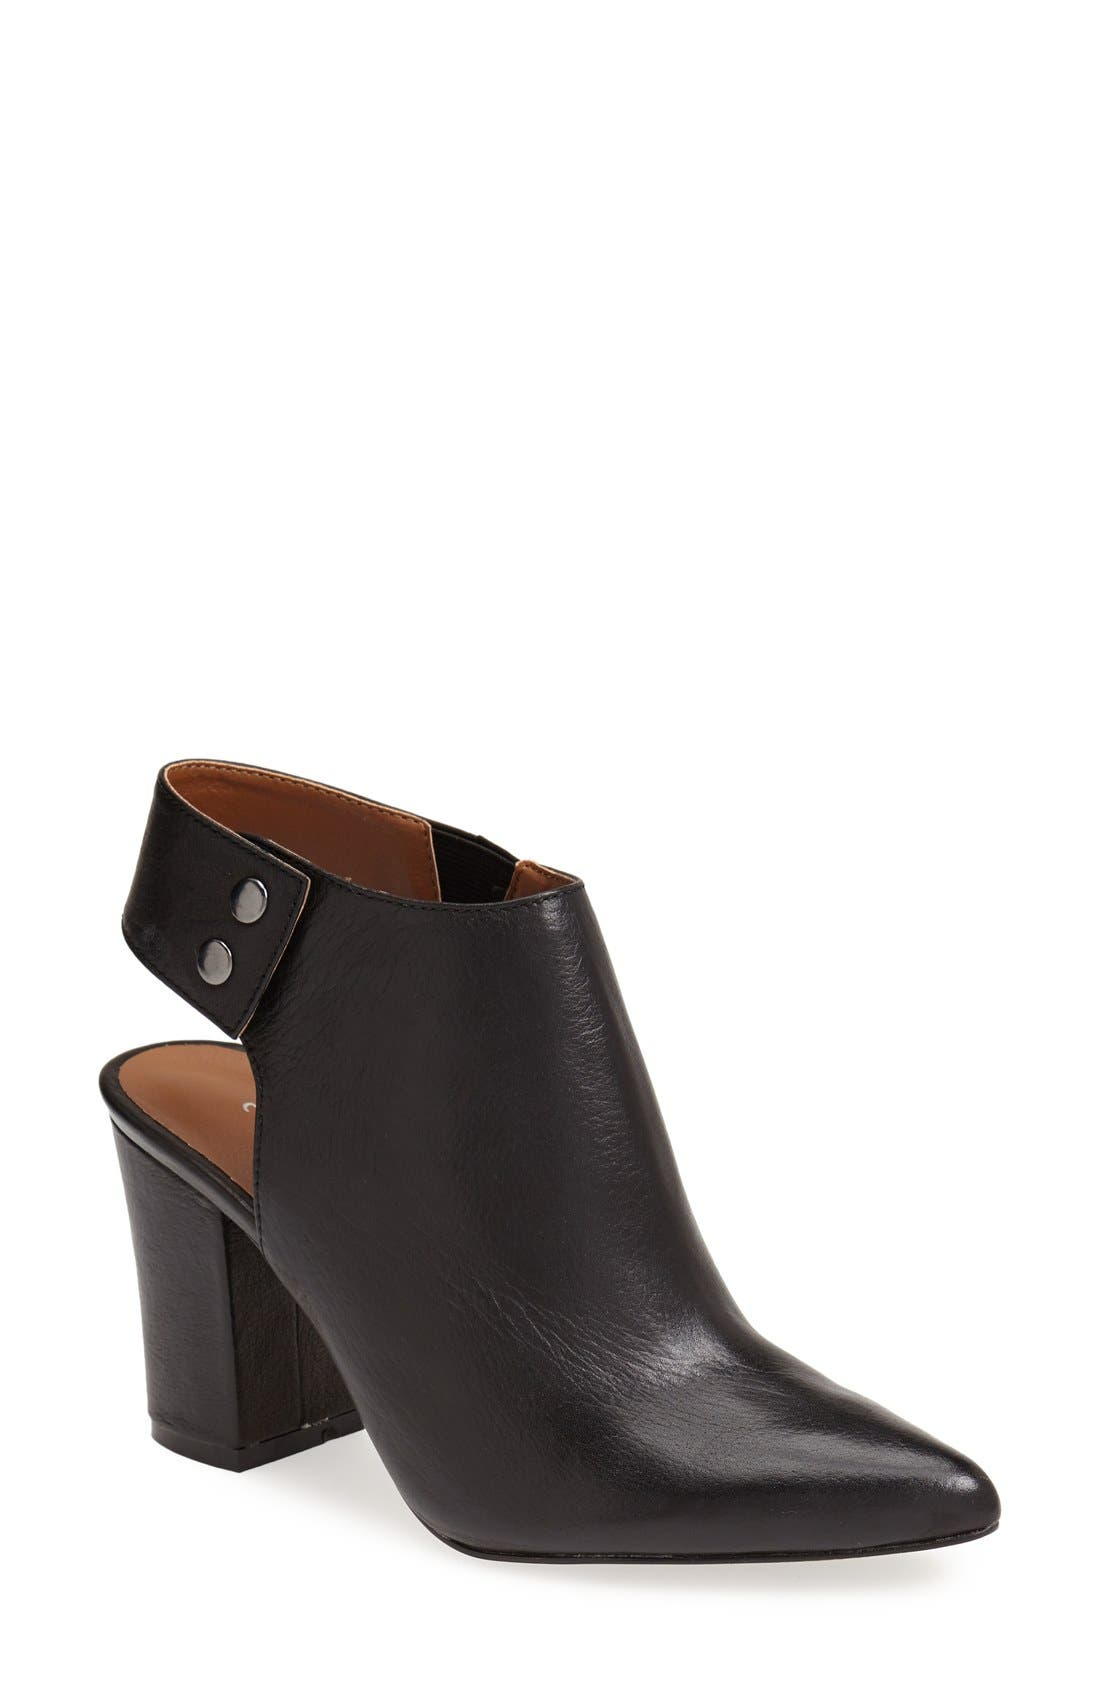 Alternate Image 1 Selected - Chinese Laundry 'Try Me' Bootie (Women)